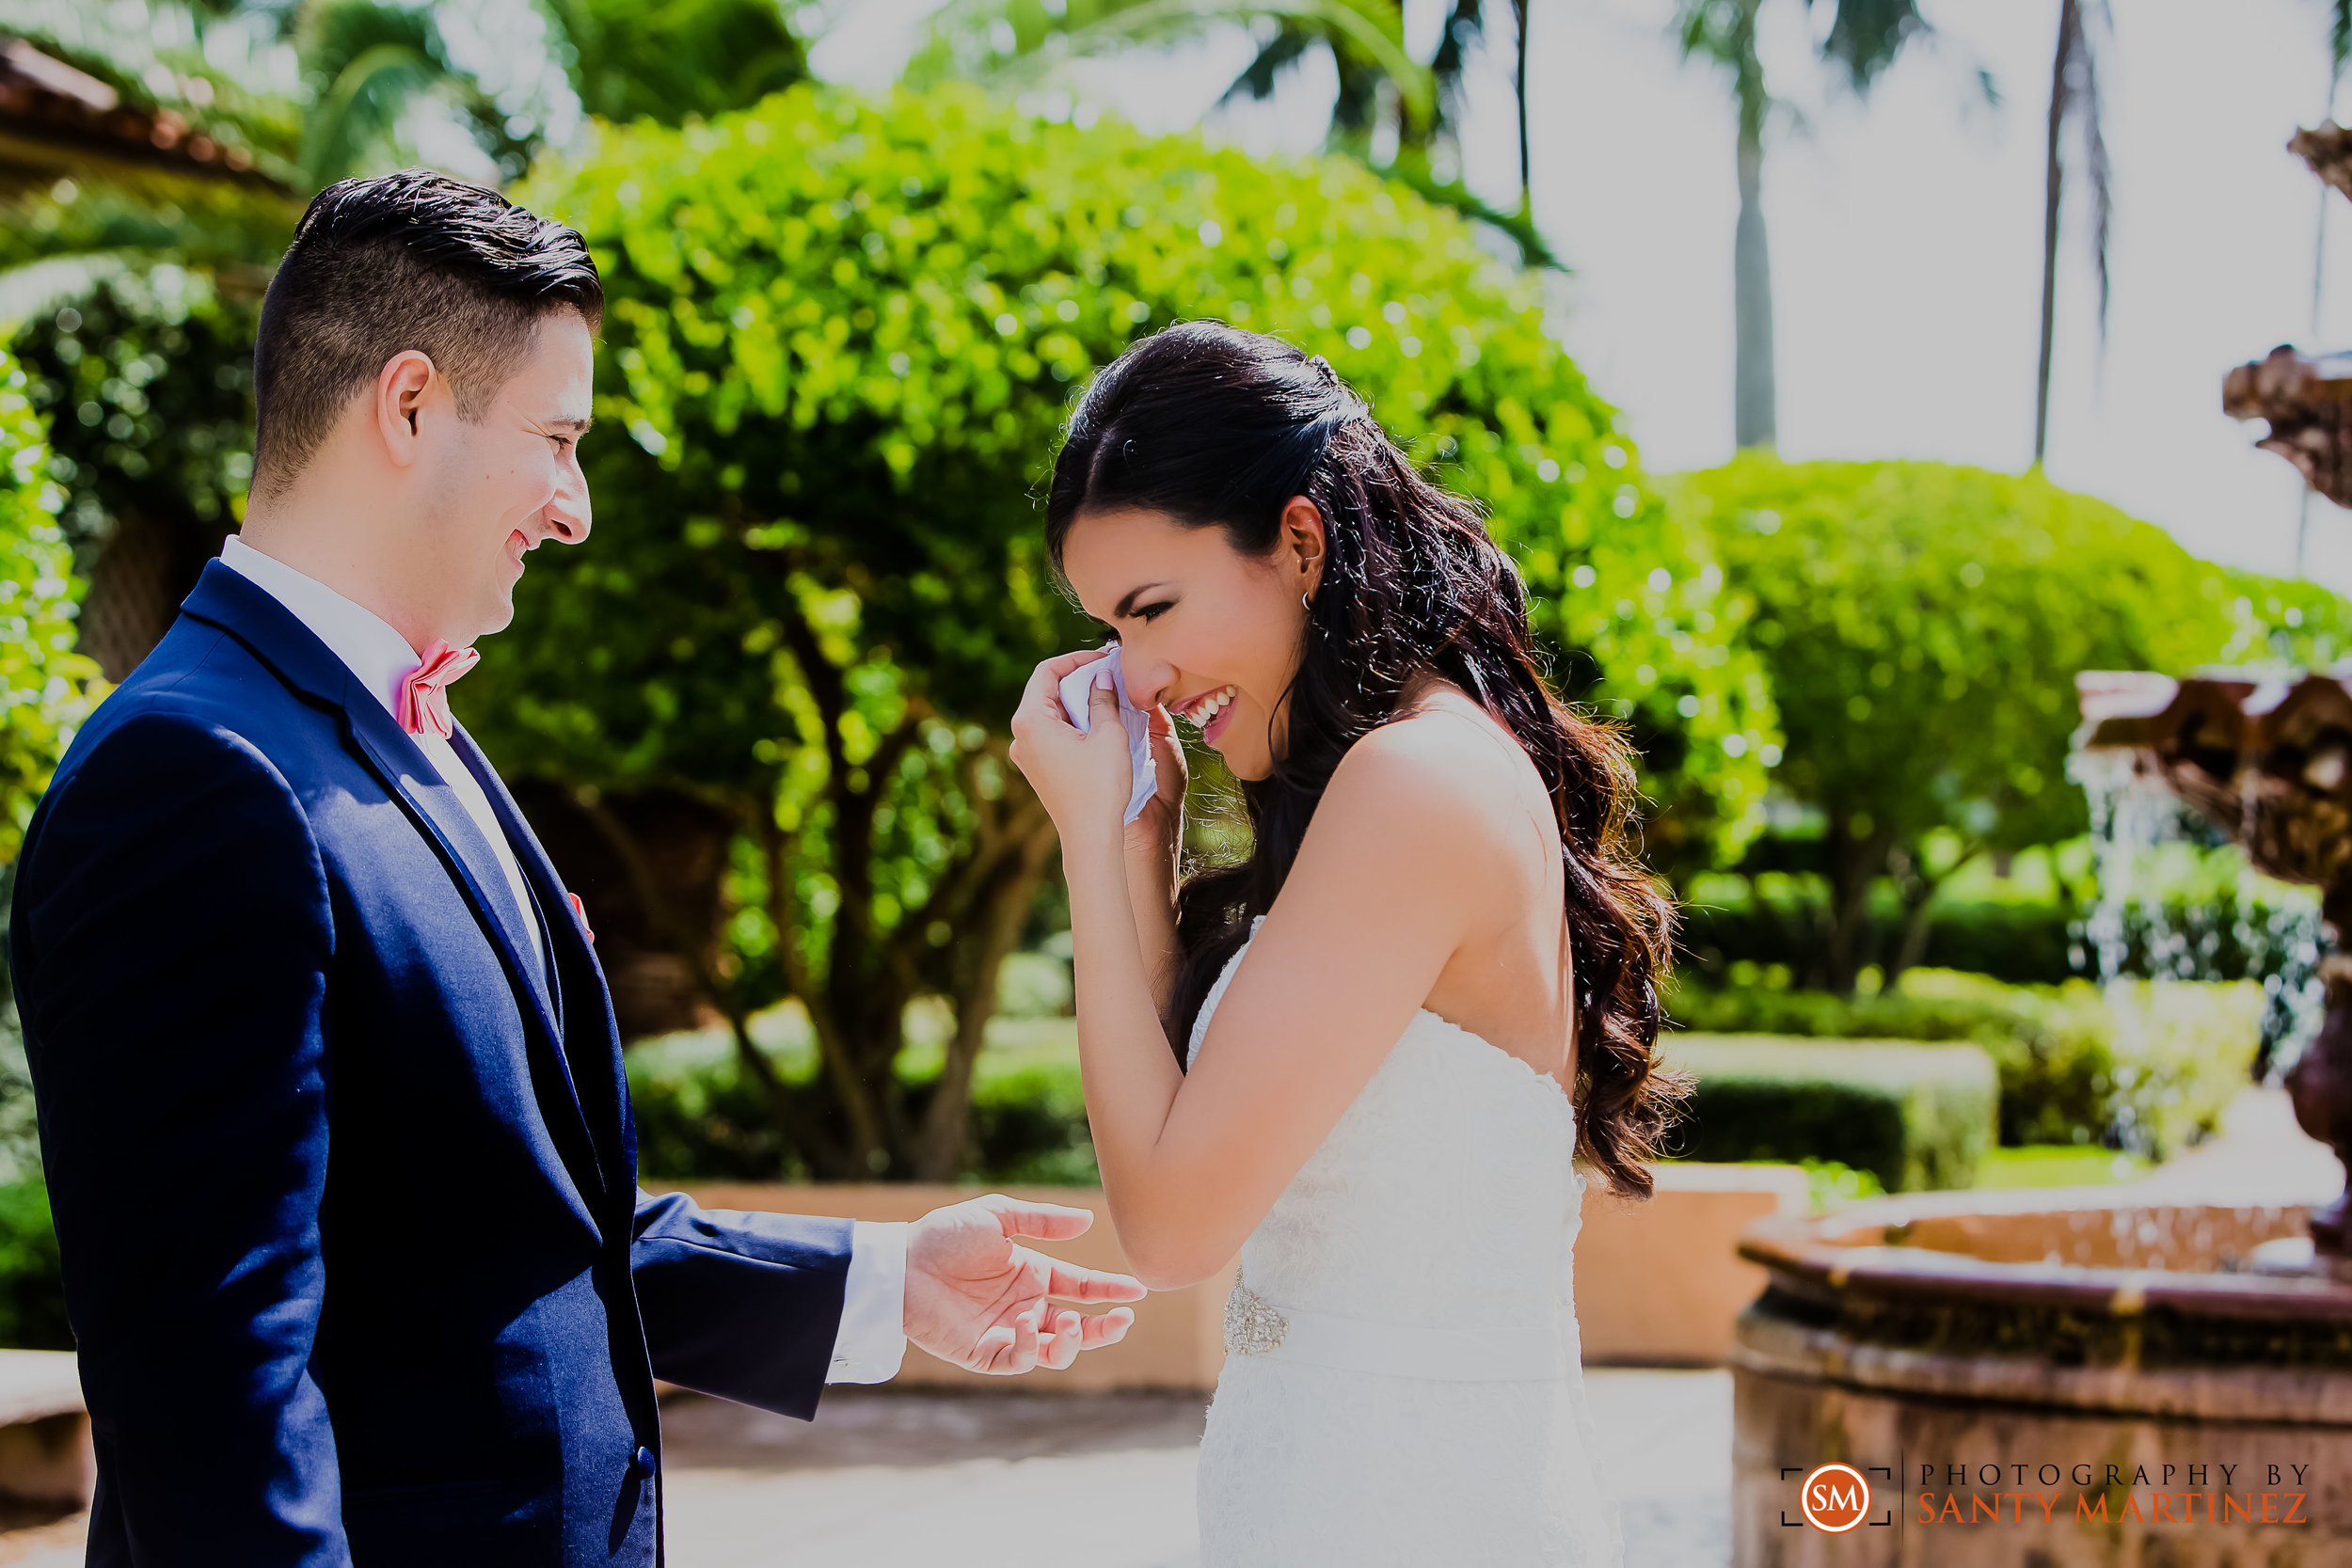 Wedding - Biltmore Hotel - Vista Lago Ballroom - Photography by Santy Martinez-17.jpg